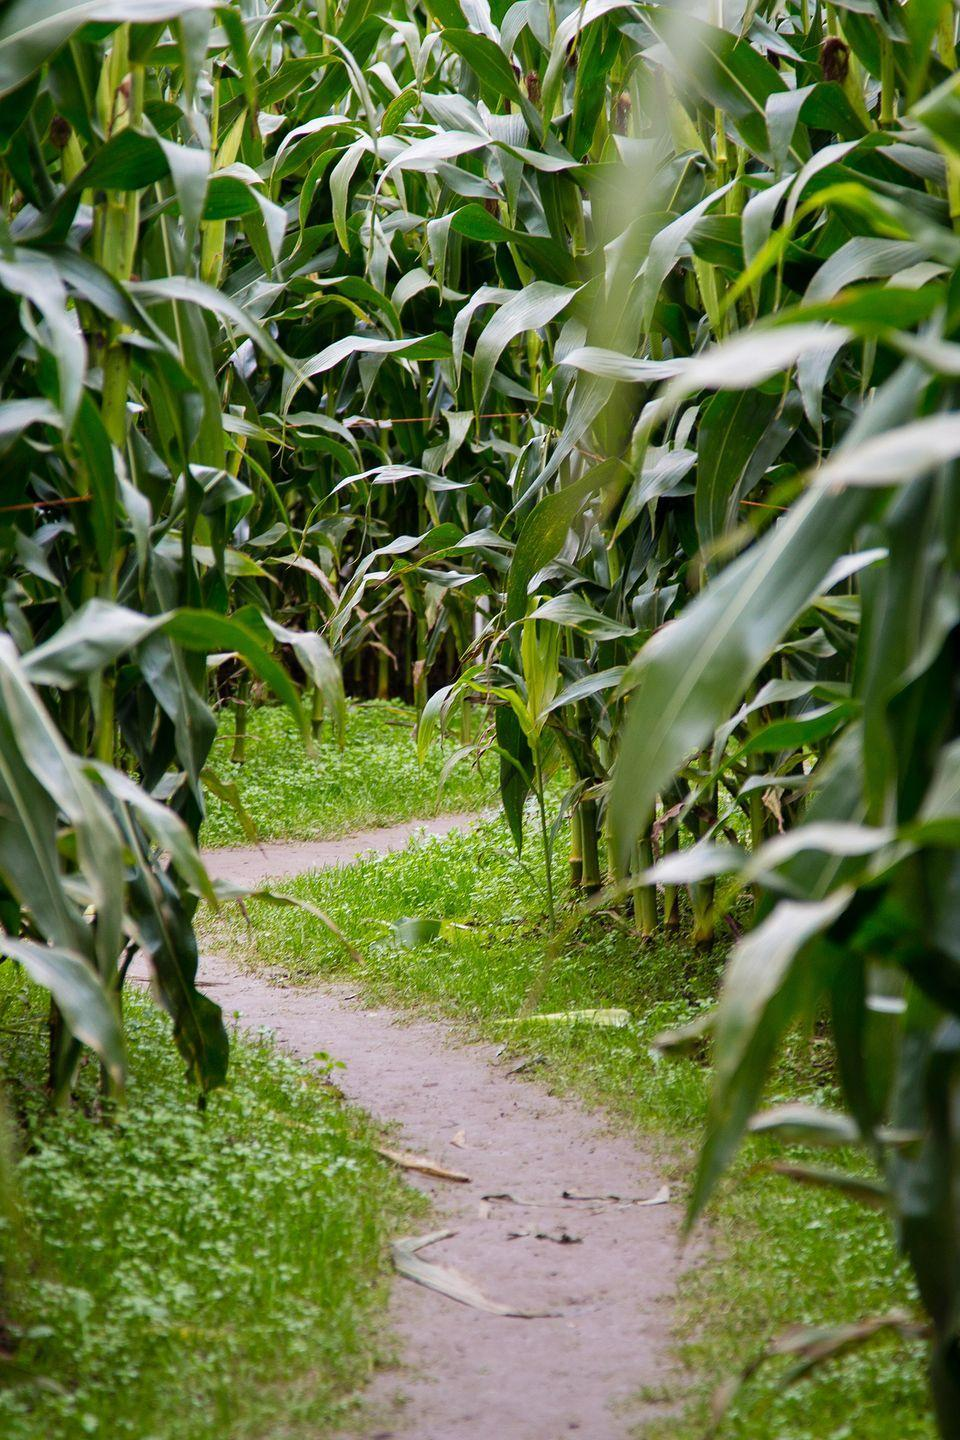 """<p>You better fuel up on snacks and fall treats from the Aurora Maze country store or The Feed Wagon before you make your way through <a href=""""https://auroramaize.com/"""" rel=""""nofollow noopener"""" target=""""_blank"""" data-ylk=""""slk:the seven-acre corn maze"""" class=""""link rapid-noclick-resp"""">the seven-acre corn maze</a> where most visitors spend around 45 minutes trying to find their way out. Once you've completed the challenge, treat yourself to more fall fun with a hayride, s'mores making around the campfire, or a visit to see the many farm animals on site.</p><p><a class=""""link rapid-noclick-resp"""" href=""""https://go.redirectingat.com?id=74968X1596630&url=https%3A%2F%2Fwww.tripadvisor.com%2FTourism-g44999-Verona_Missouri-Vacations.html&sref=https%3A%2F%2Fwww.countryliving.com%2Flife%2Ftravel%2Fg22717241%2Fcorn-maze-near-me%2F"""" rel=""""nofollow noopener"""" target=""""_blank"""" data-ylk=""""slk:PLAN YOUR TRIP"""">PLAN YOUR TRIP</a></p>"""